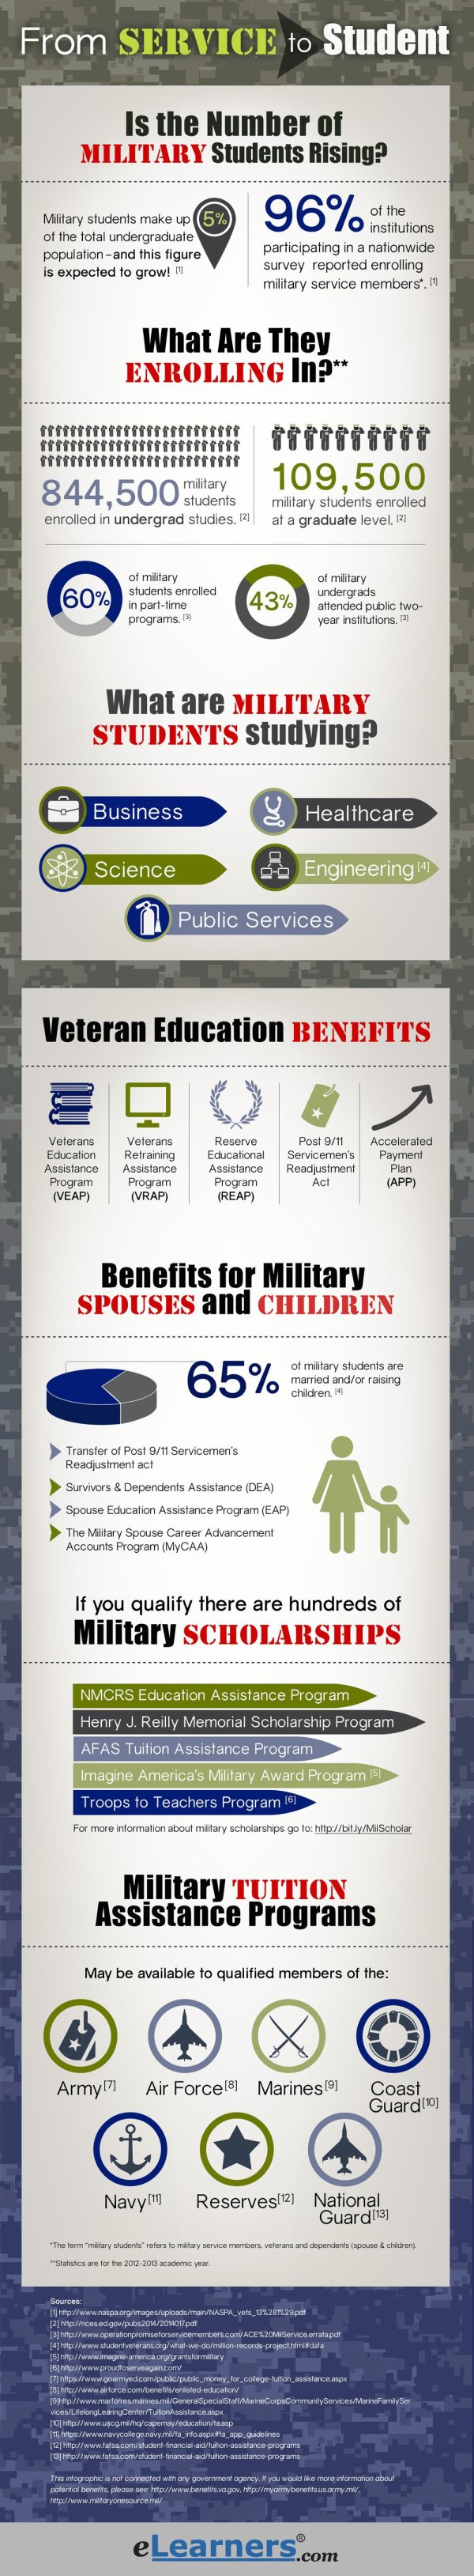 Overview Of Military Students In Higher Education